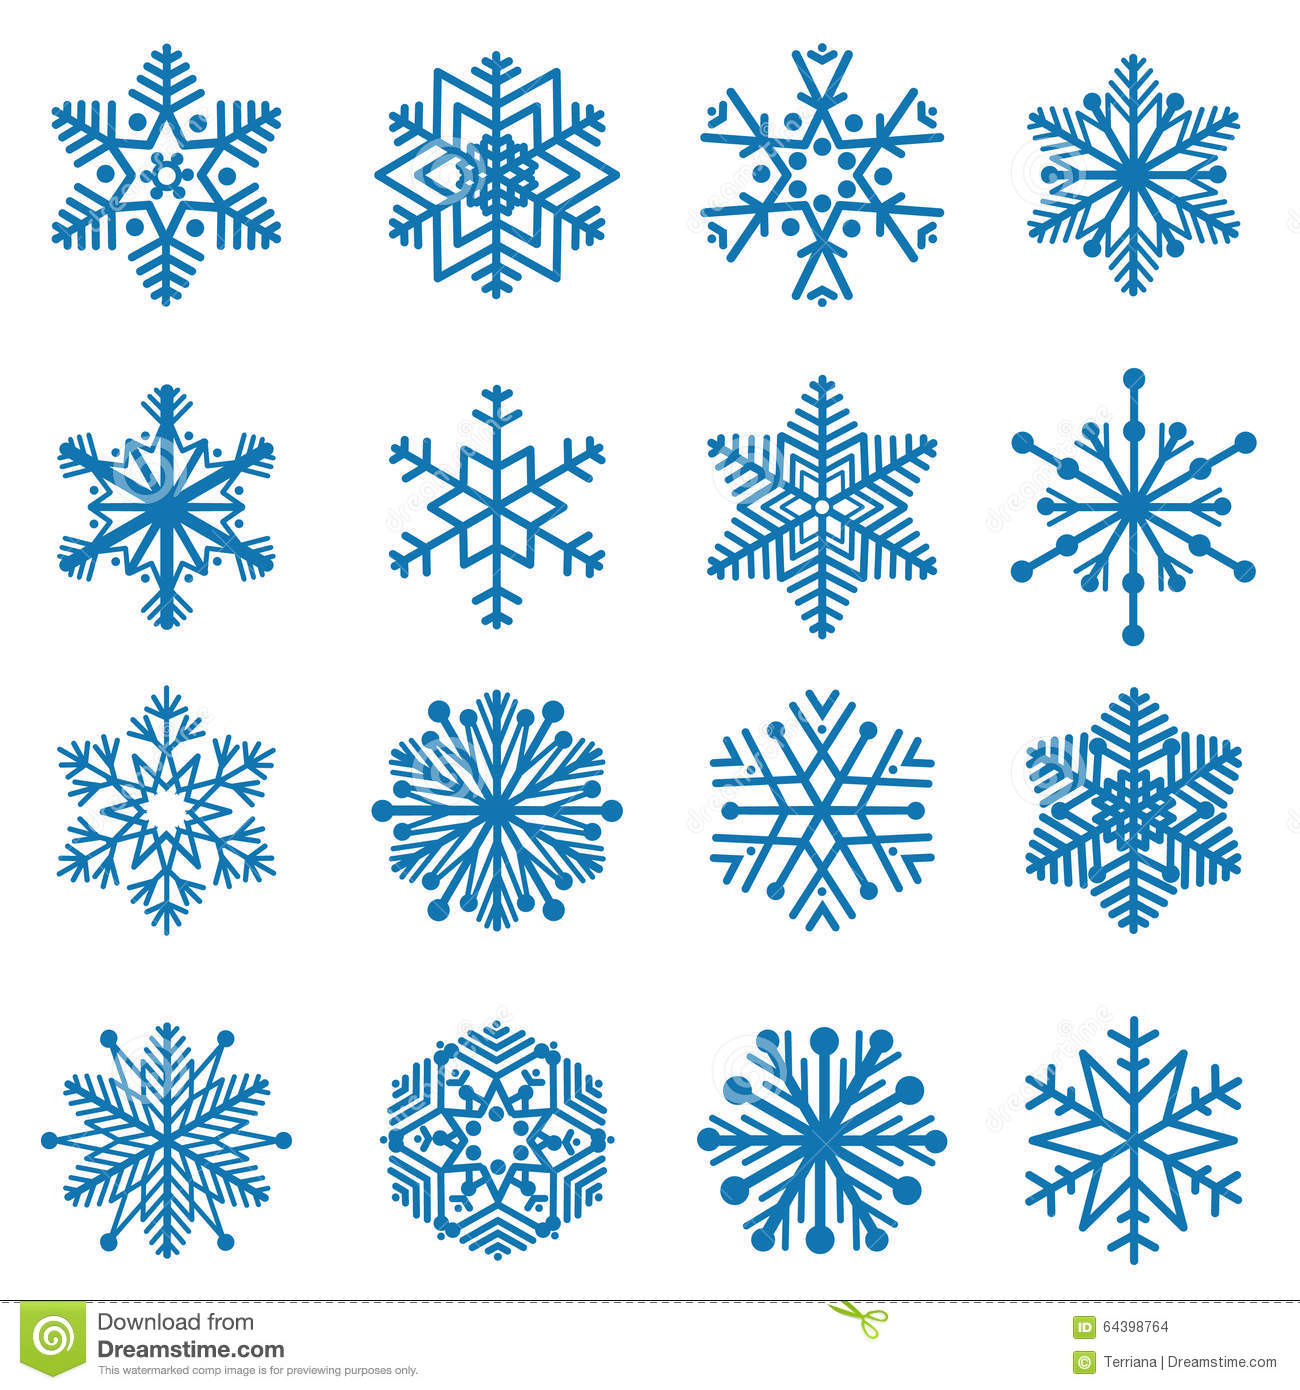 Snowflakes blue snow icon set winter holiday symbols isolated